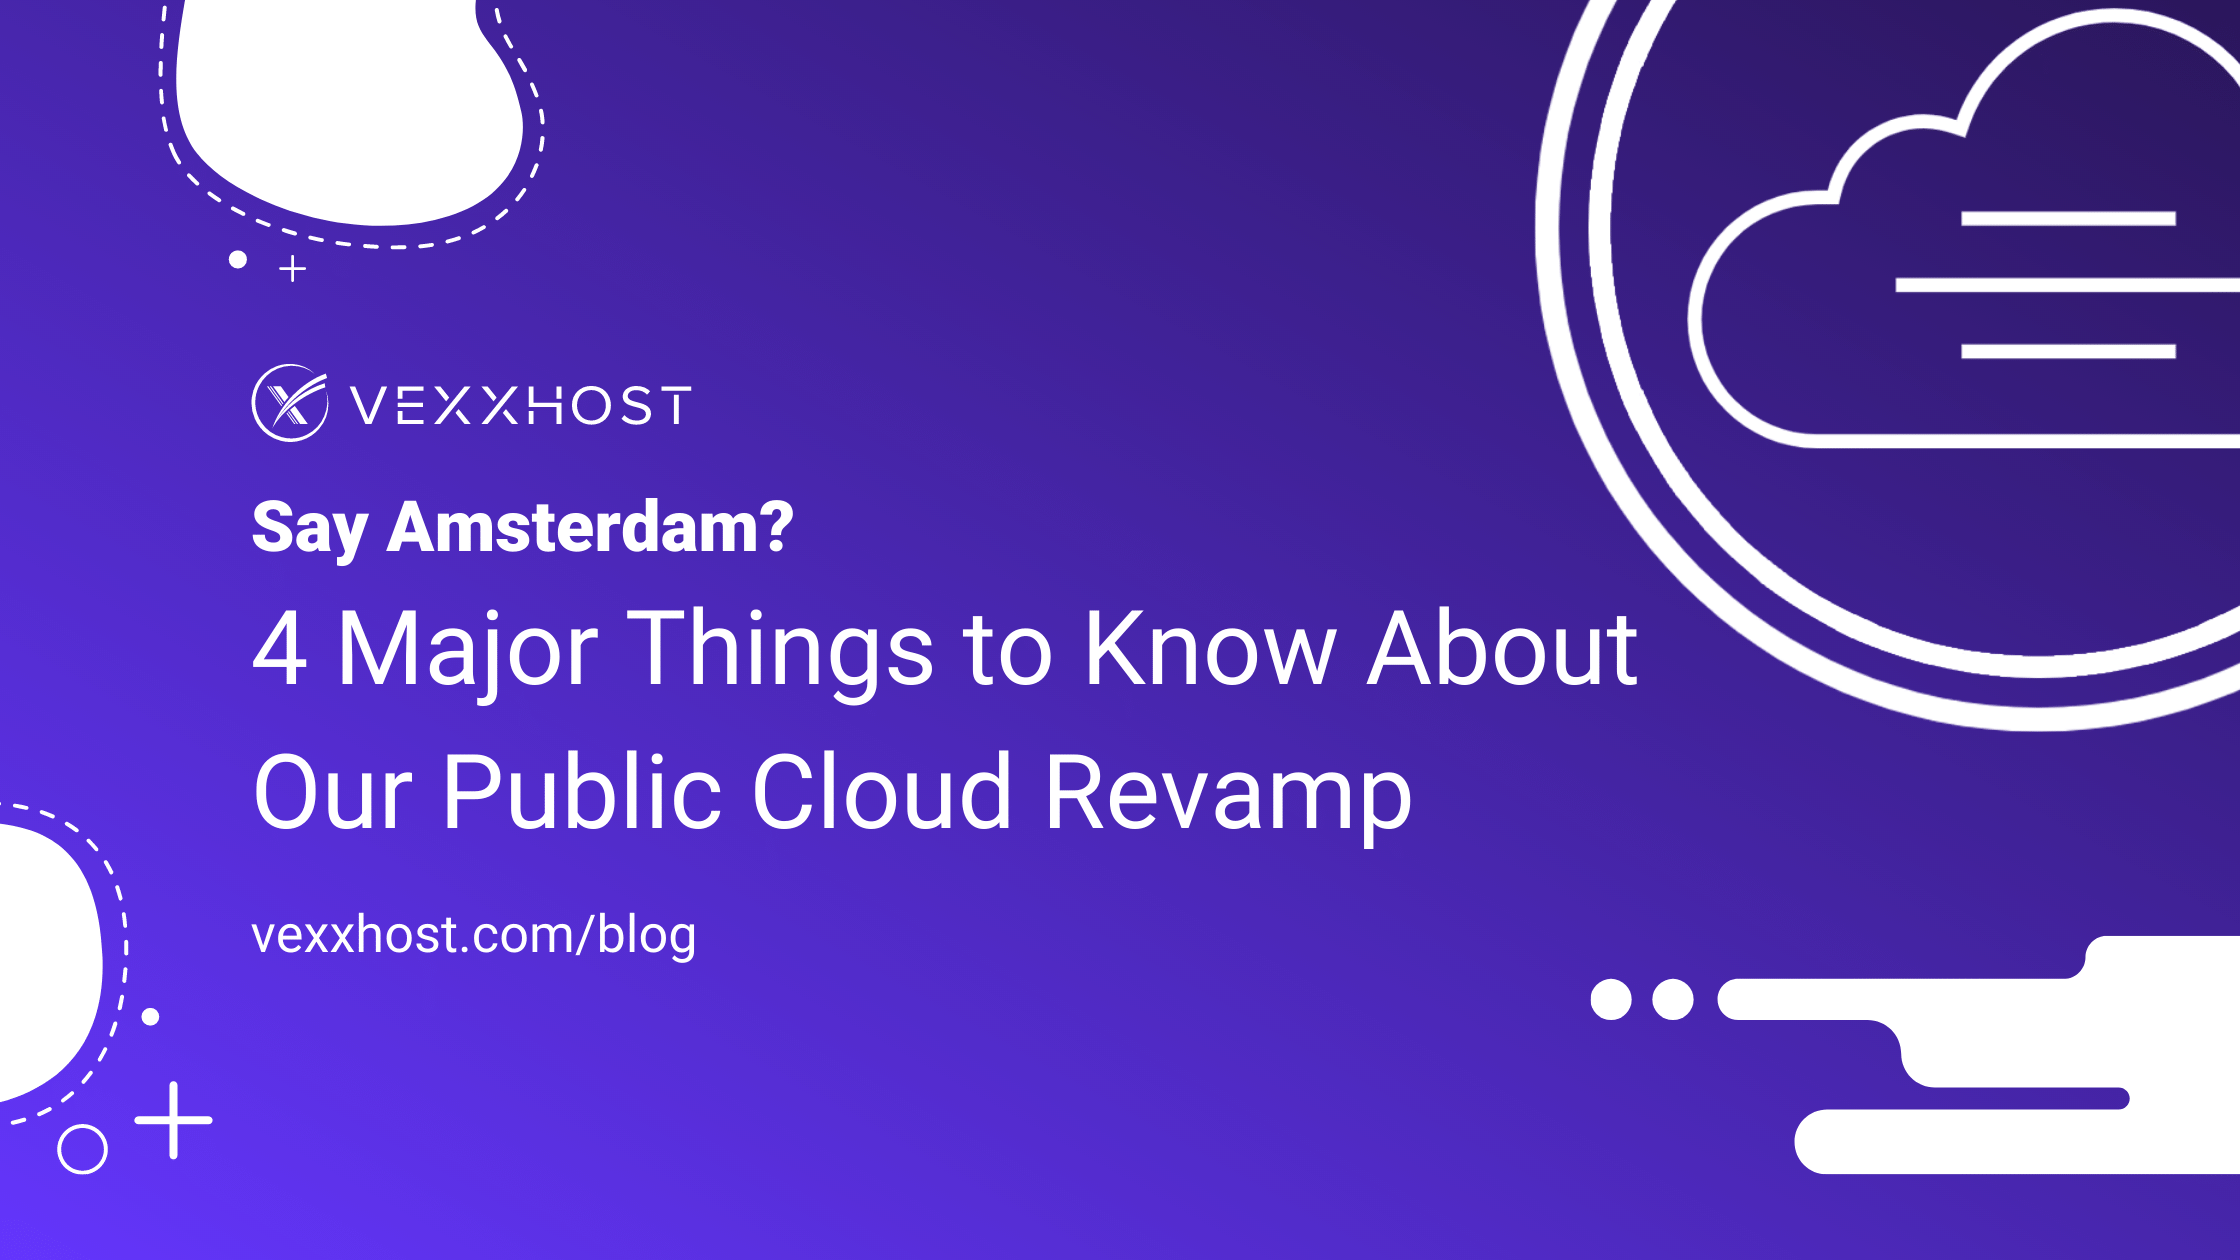 4-Major-Things-to-Know-About-Our-Public-Cloud-Revamp